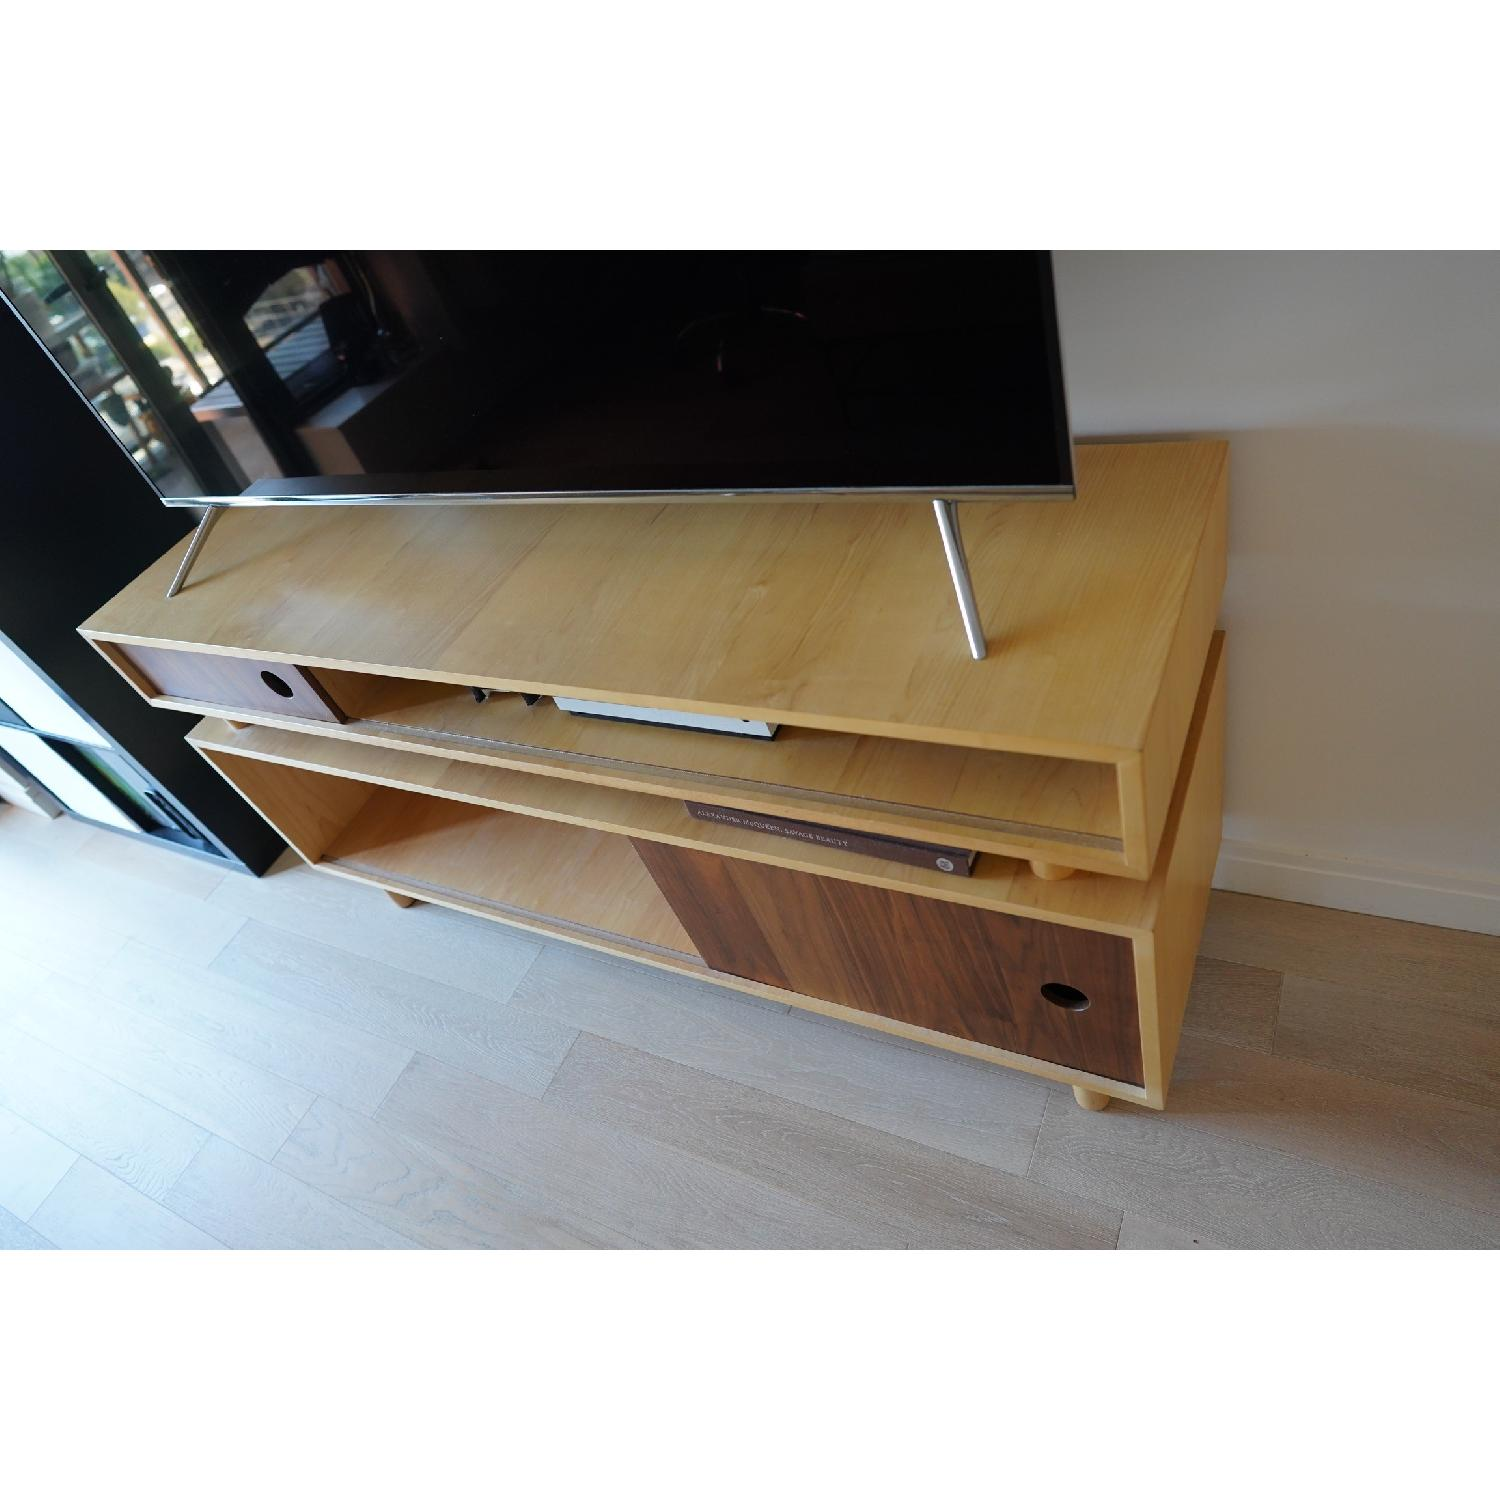 Urban Outfitters Hamilton Wood Media Console - image-5